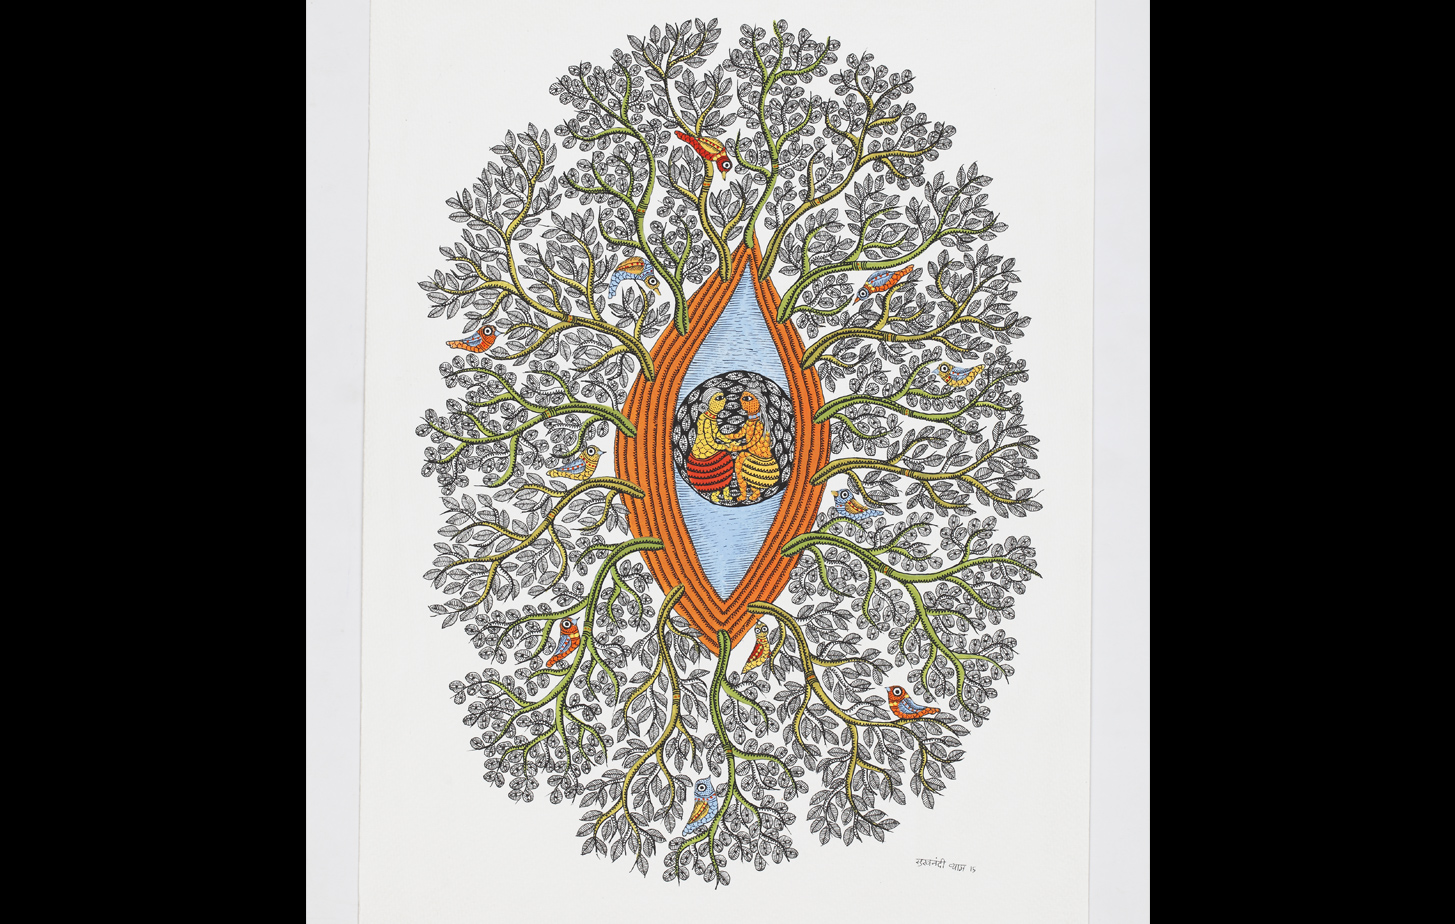 Gond art of foliage pattern with a central opening that hints at the fertility of Mother Earth.